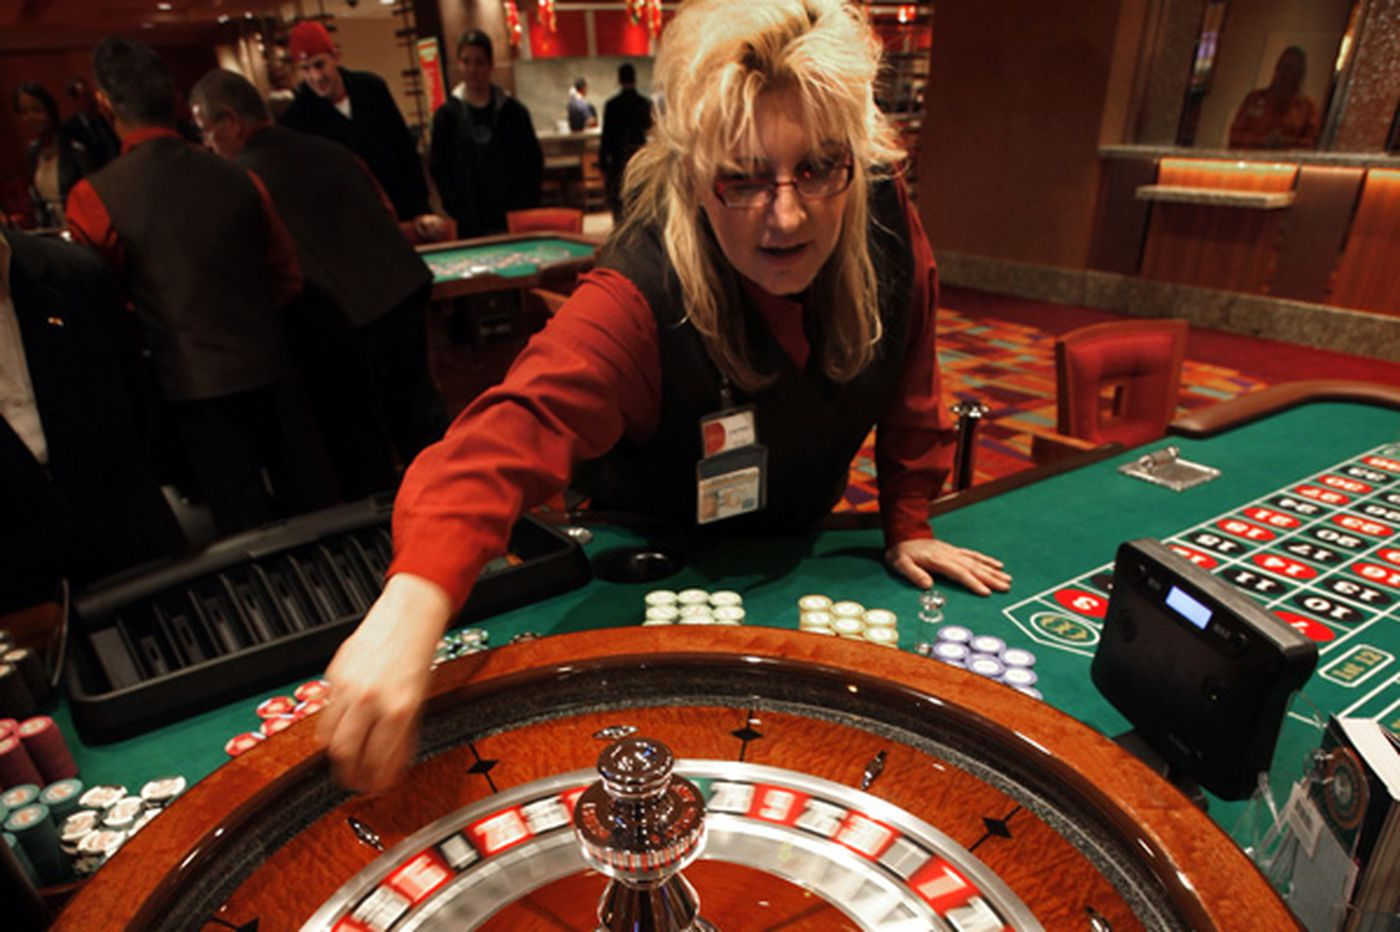 Pa. casinos took $67.9M at table games in March